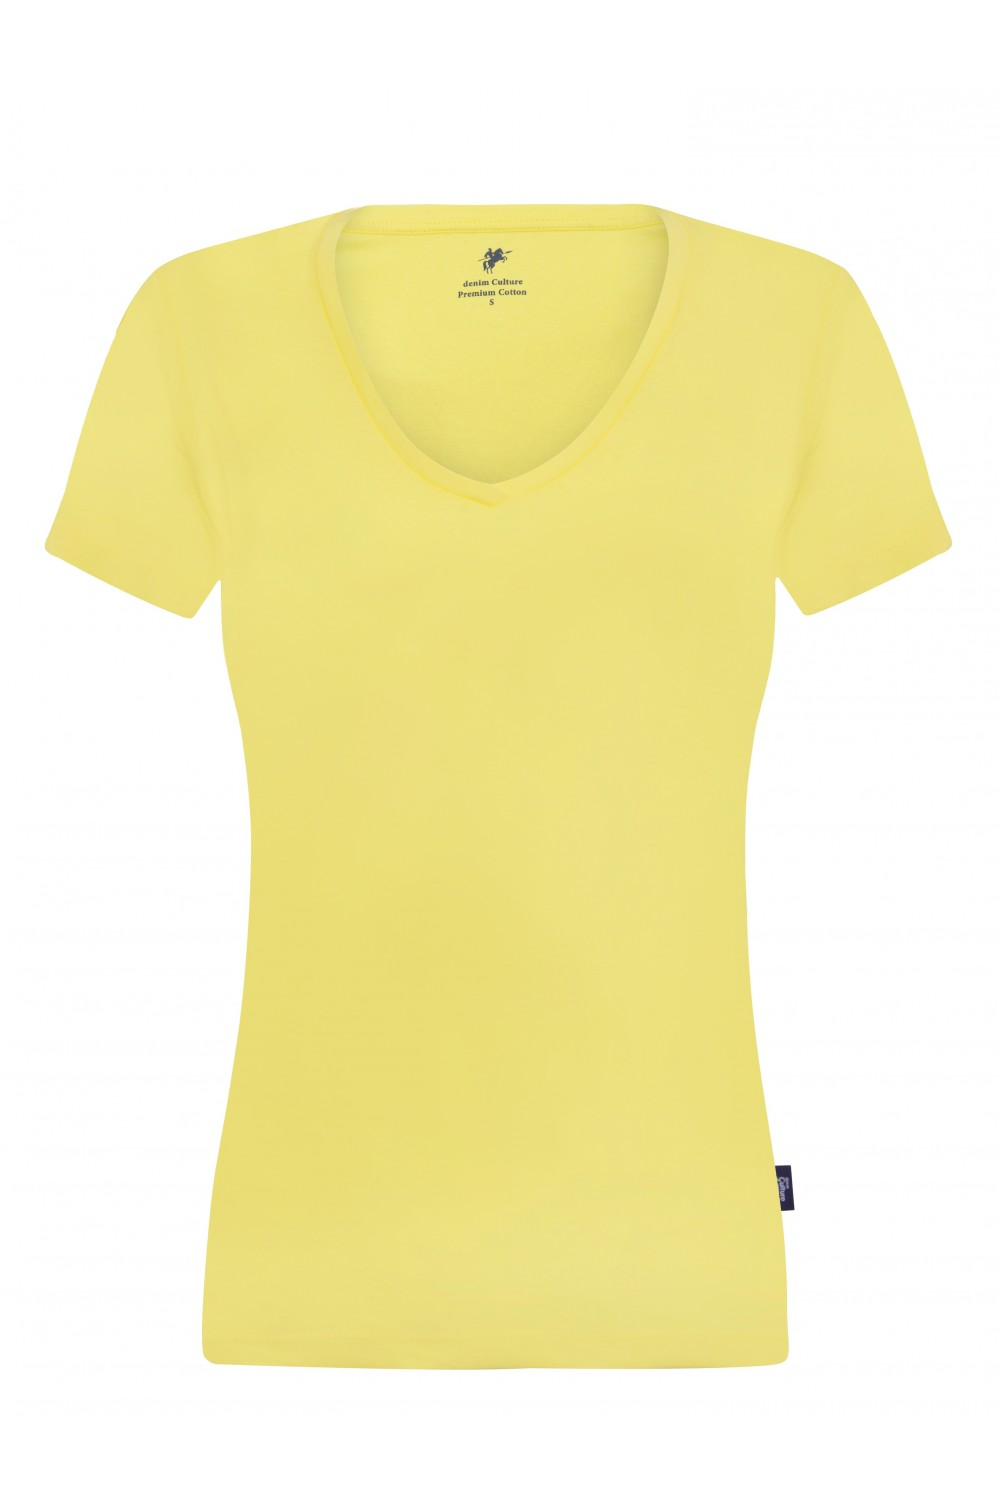 Women's T-Shirt V-neck Yellow Cotton